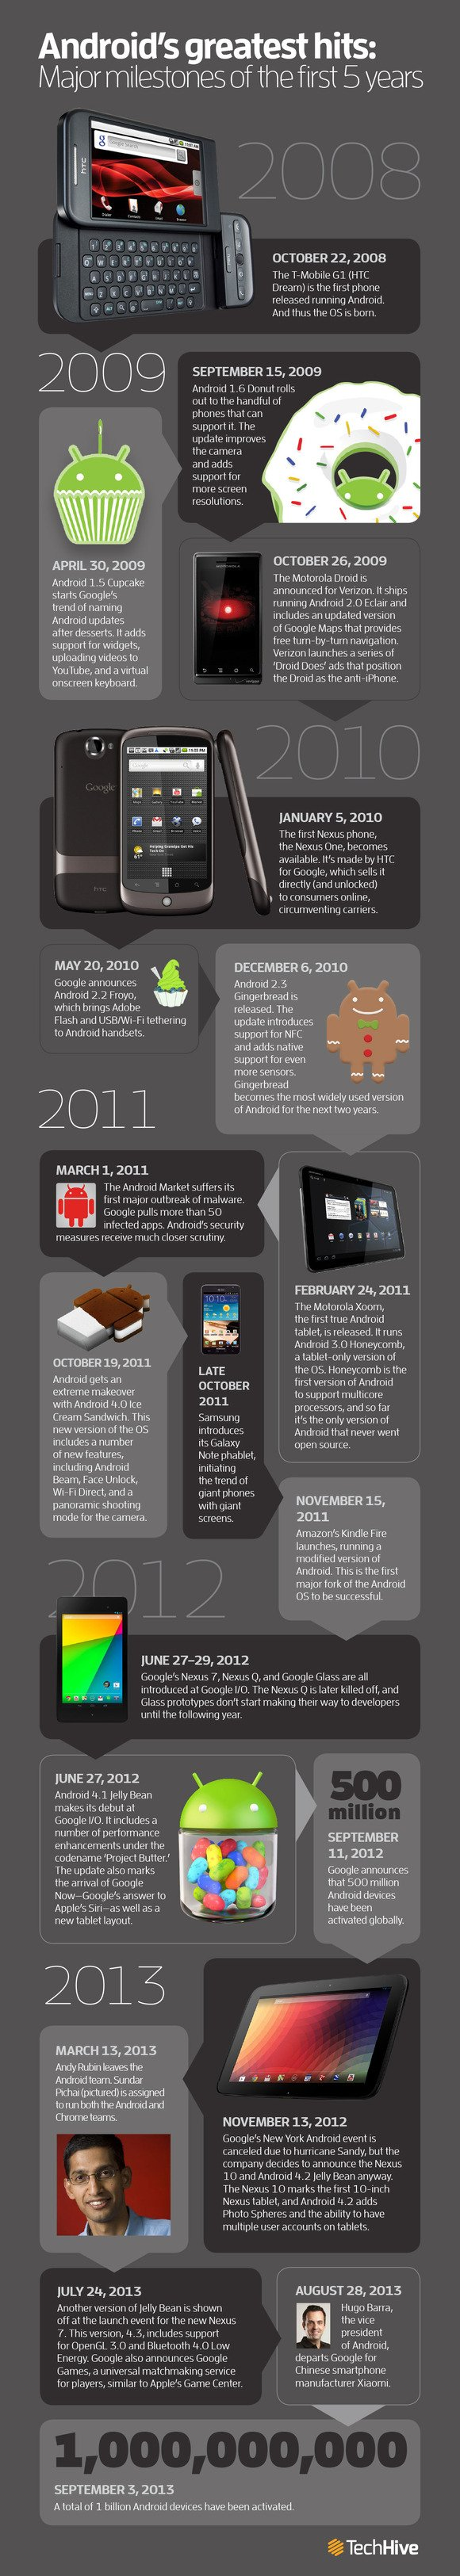 androidtimeline_1000px-100058548-large